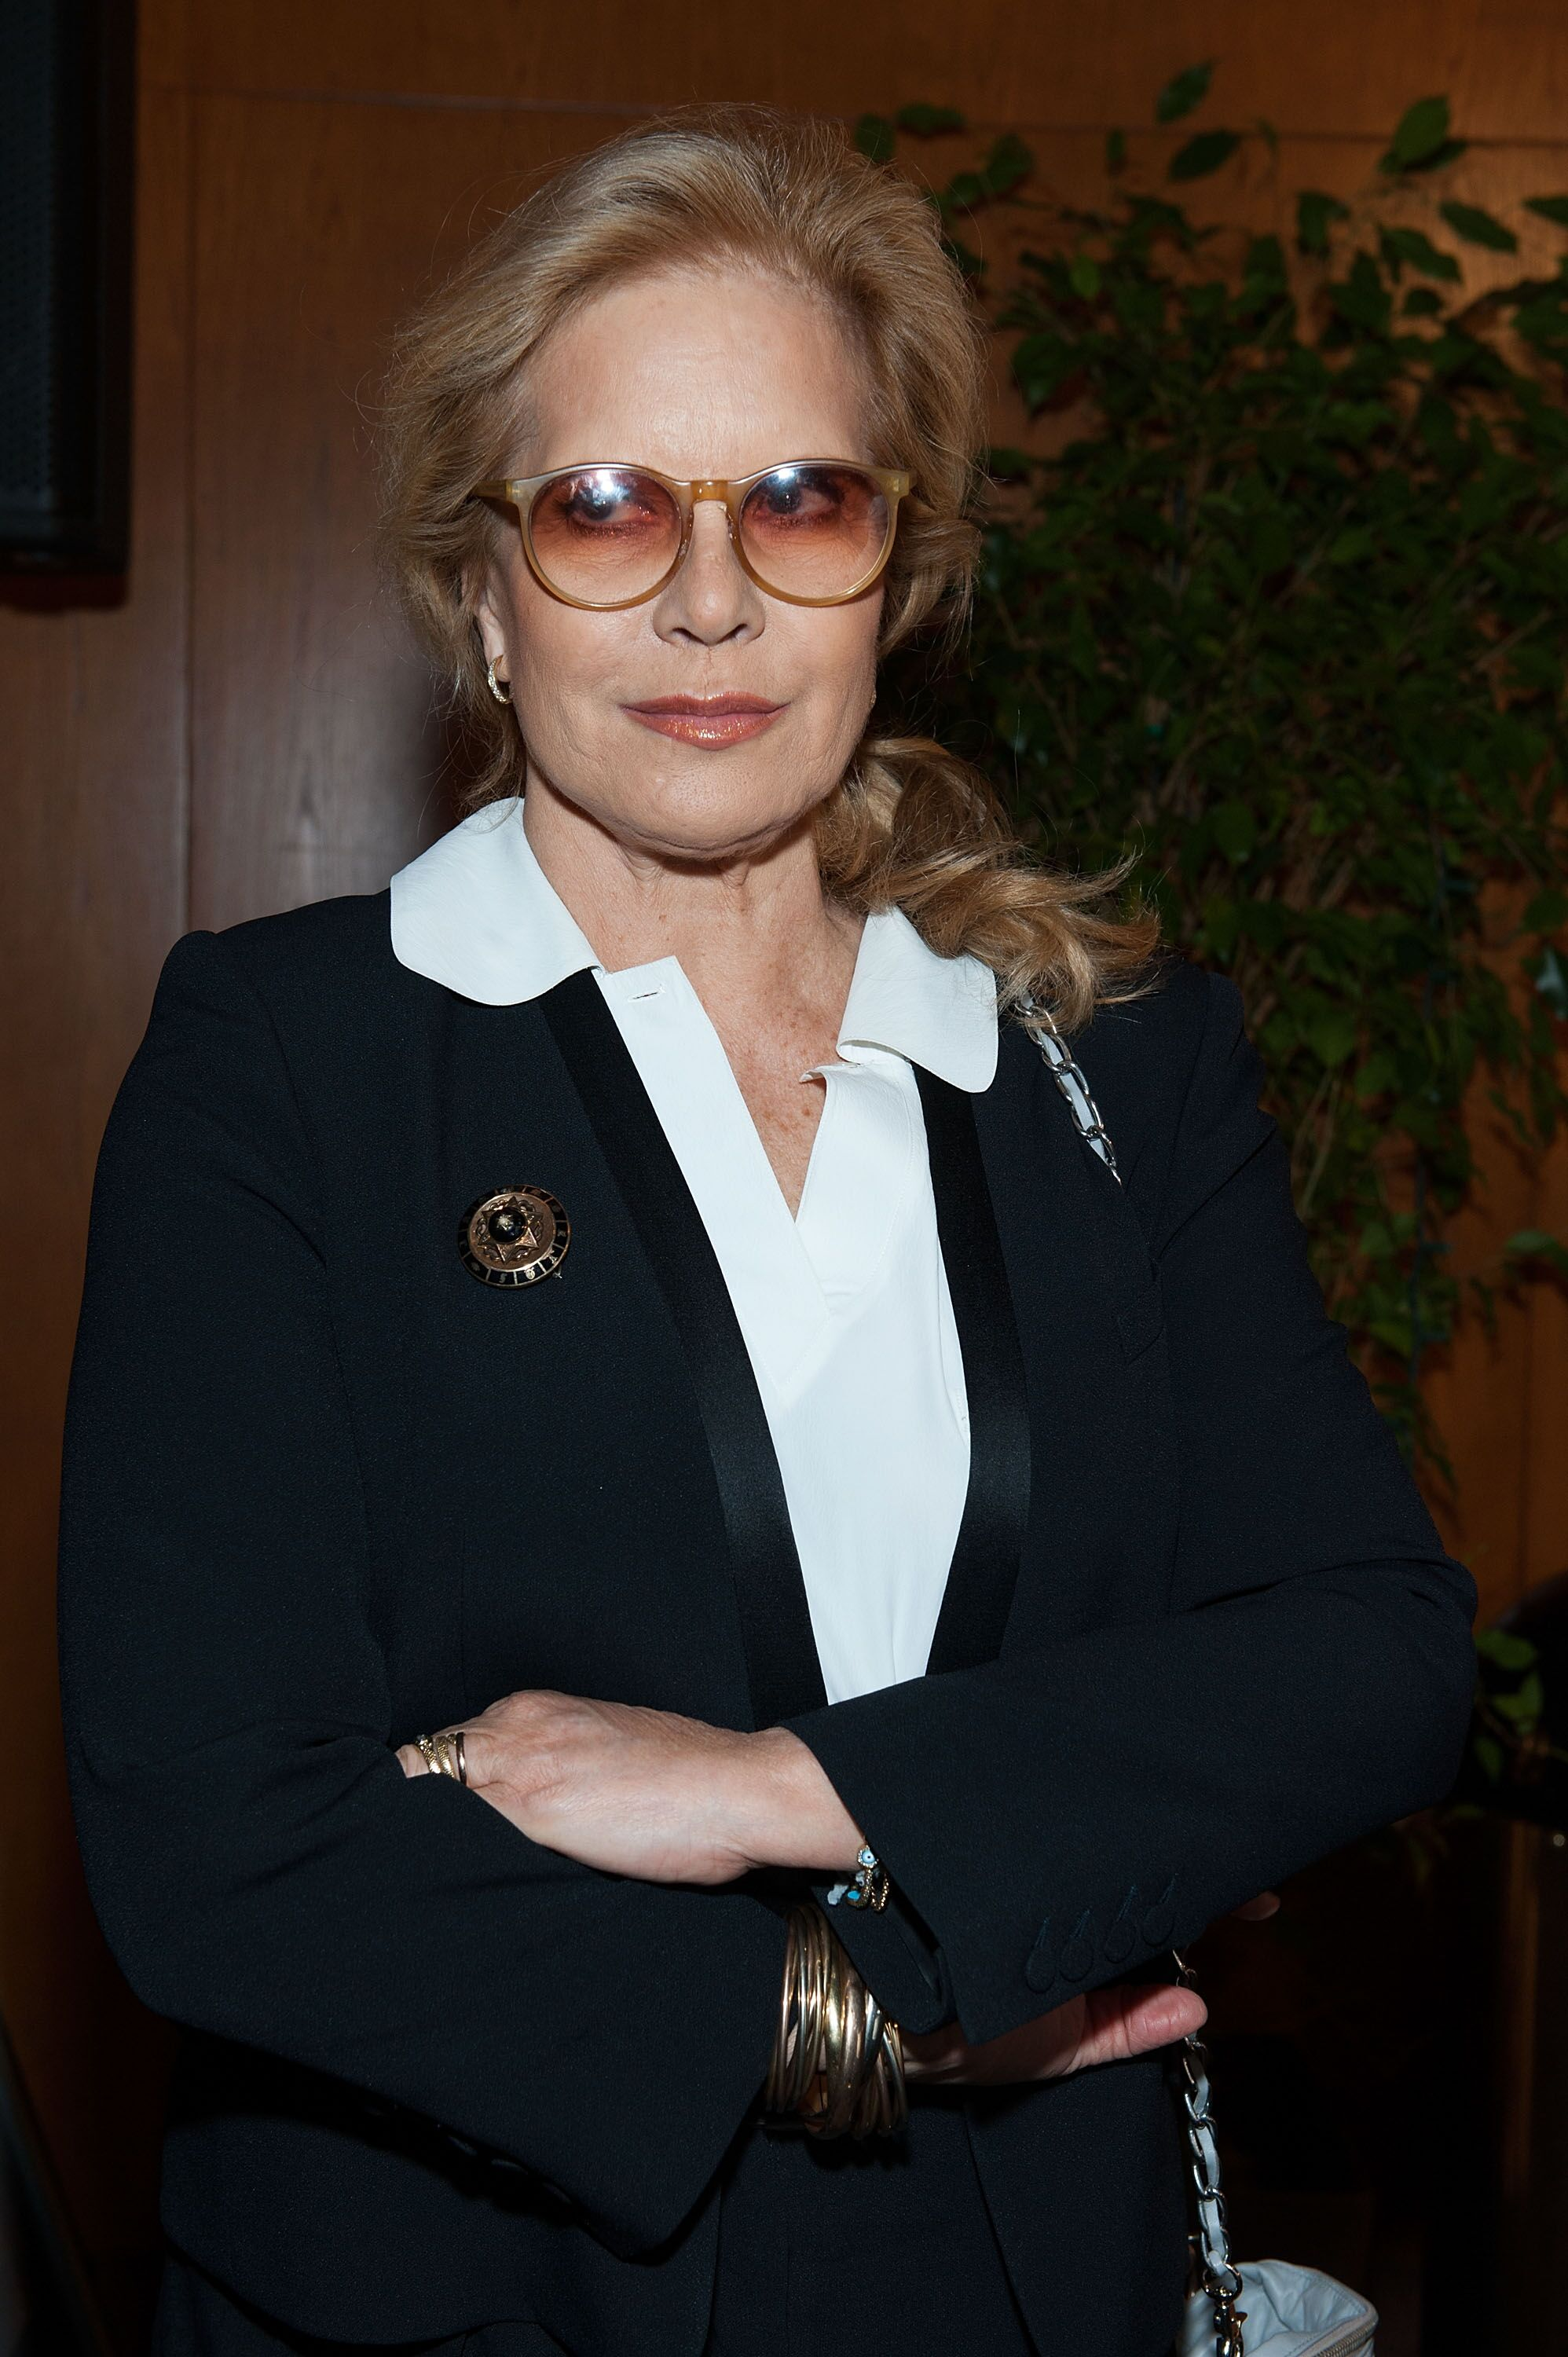 Sylvie Vartan croisant les bras - Photo : Getty Images